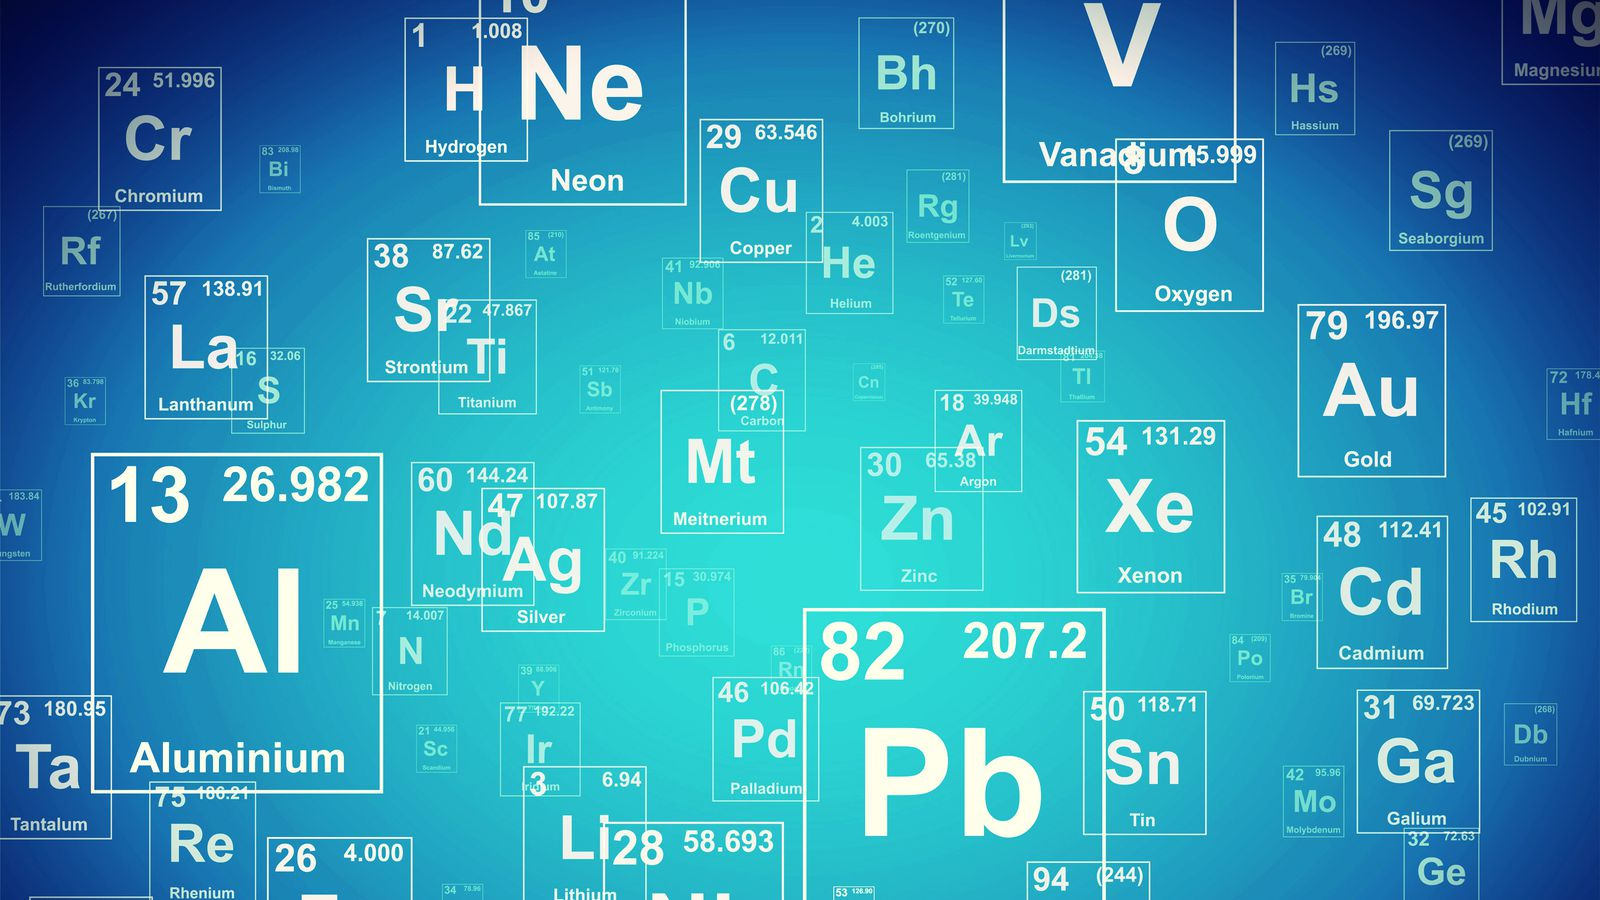 Here are the proposed names for the 4 newest elements on the here are the proposed names for the 4 newest elements on the periodic table vox gamestrikefo Images